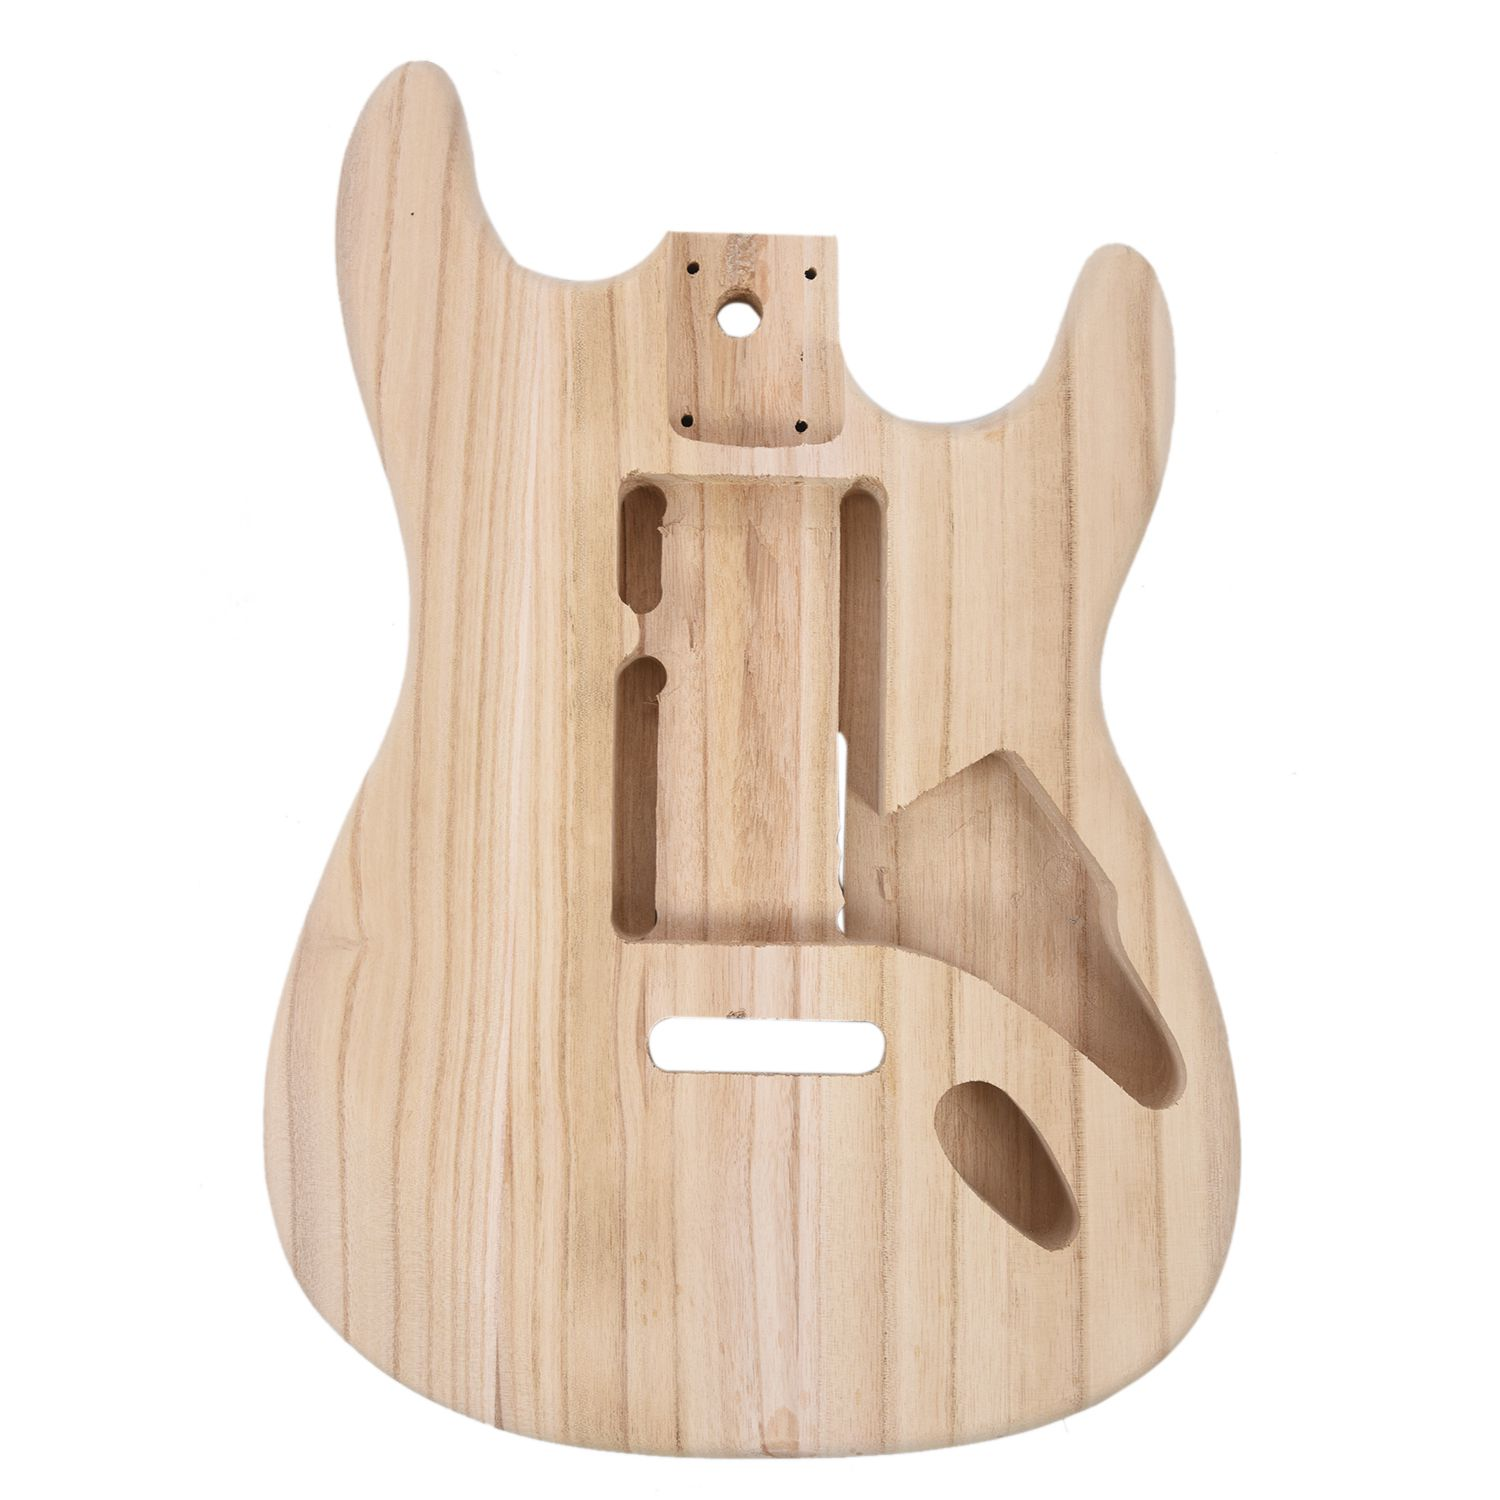 SEWS-Wood type electric guitar accessories ST electric guitar barrel material maple guitar barrel body musiclily 3ply pvc outline pickguard for fenderstrat st guitar custom